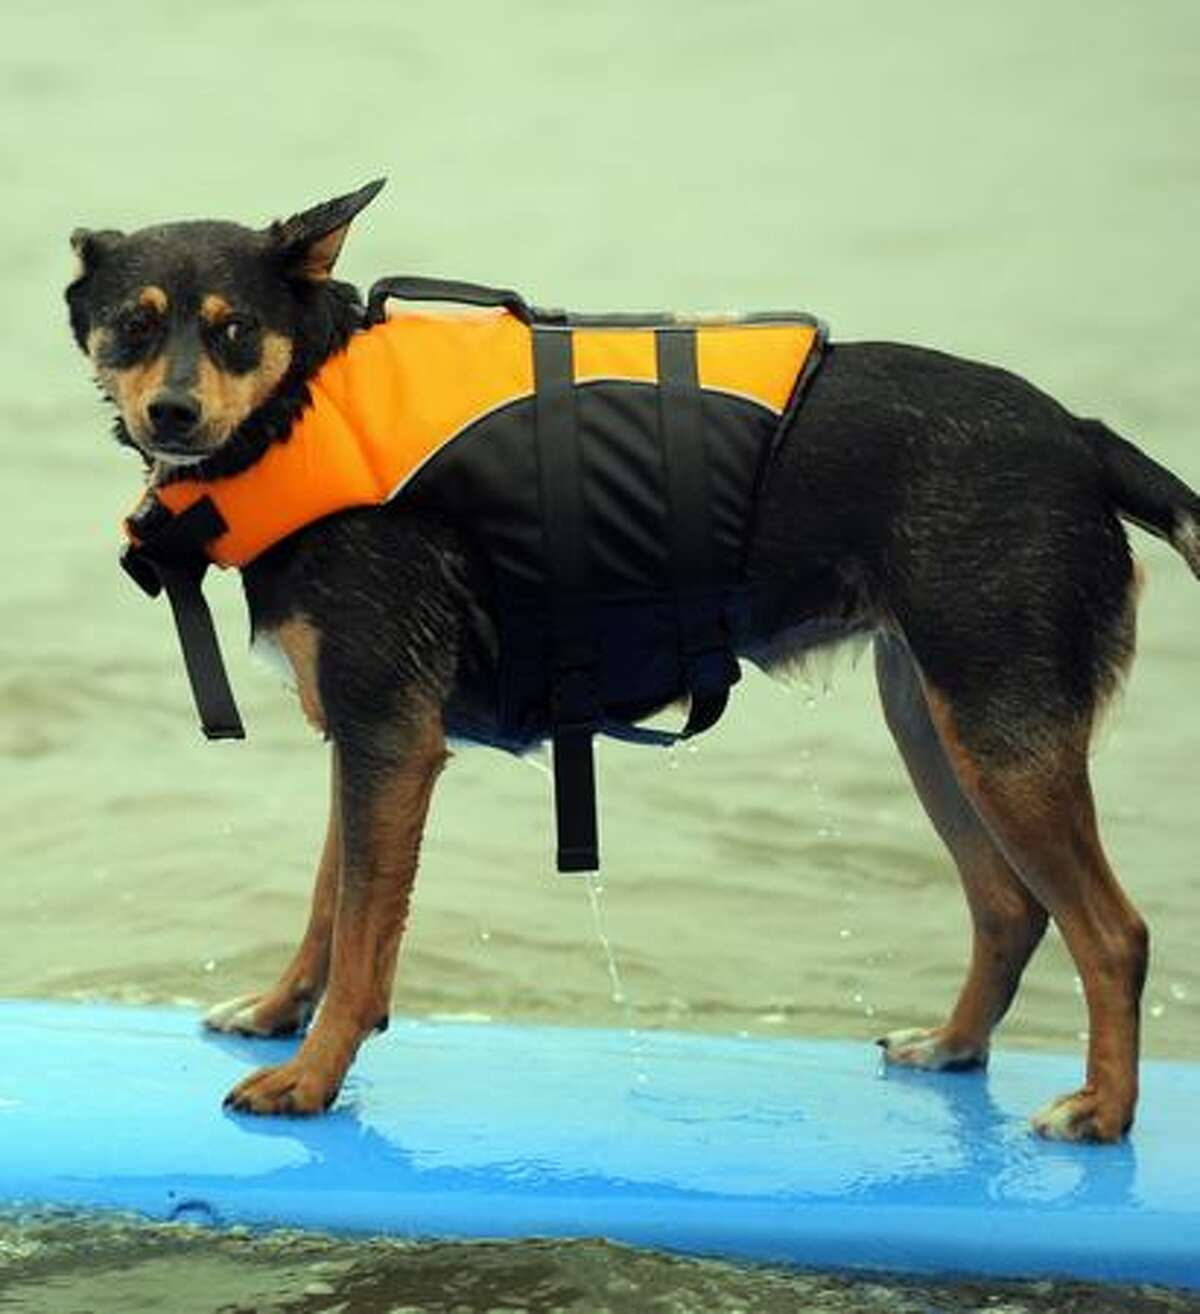 A dog surfs during the 4th Annual Loews Coronado Bay Resort Surf Dog Competion in Imperial Beach, California.